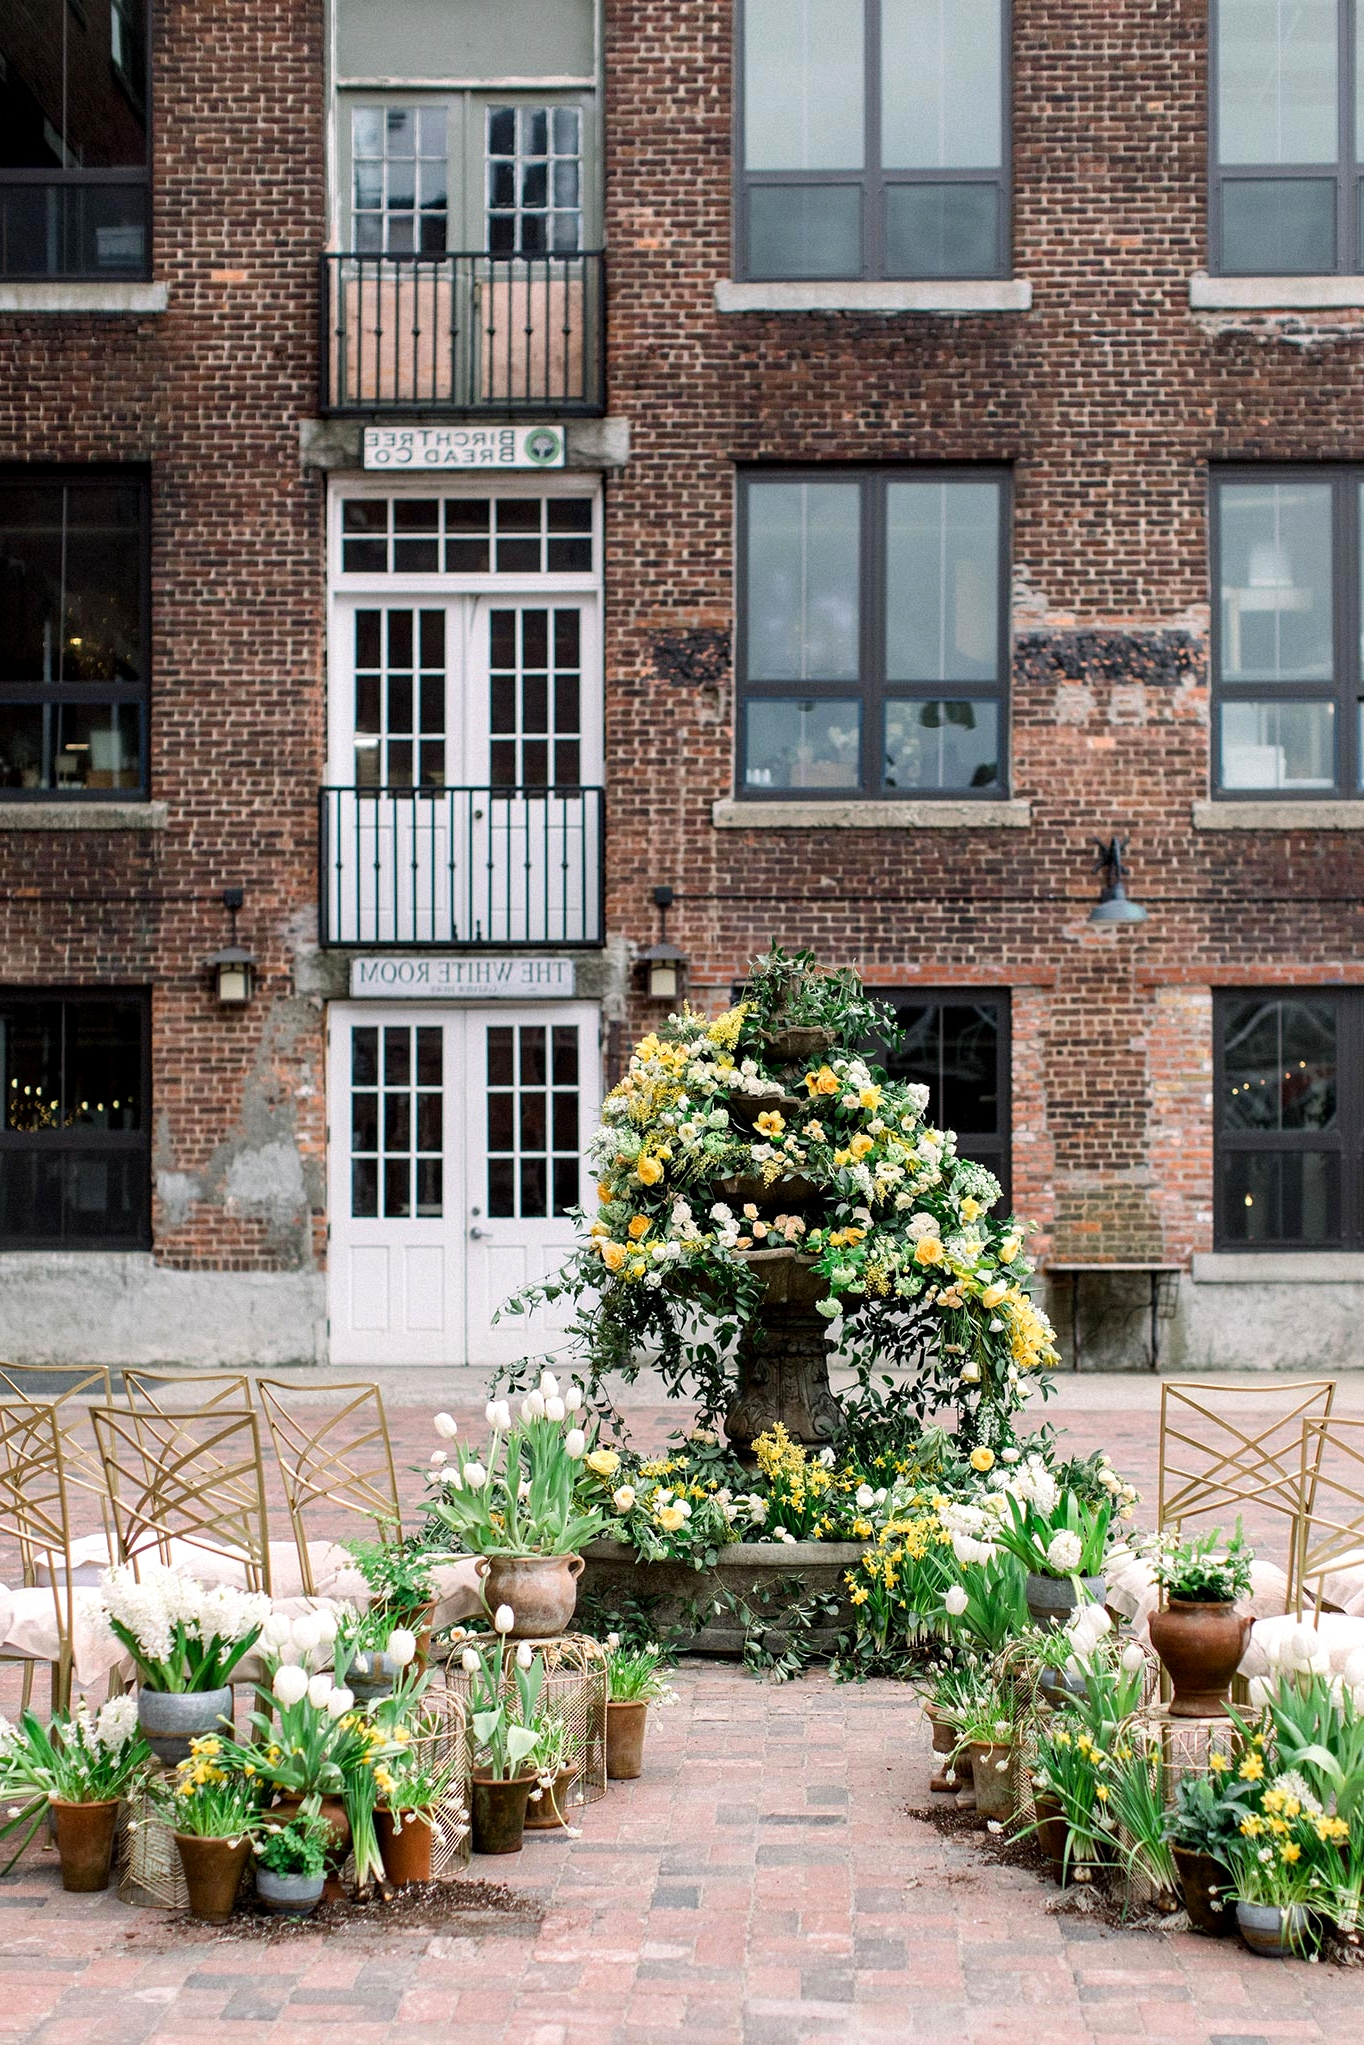 courtyard wedding ceremony with potted plant aisle markers and a floral fountain backdrop